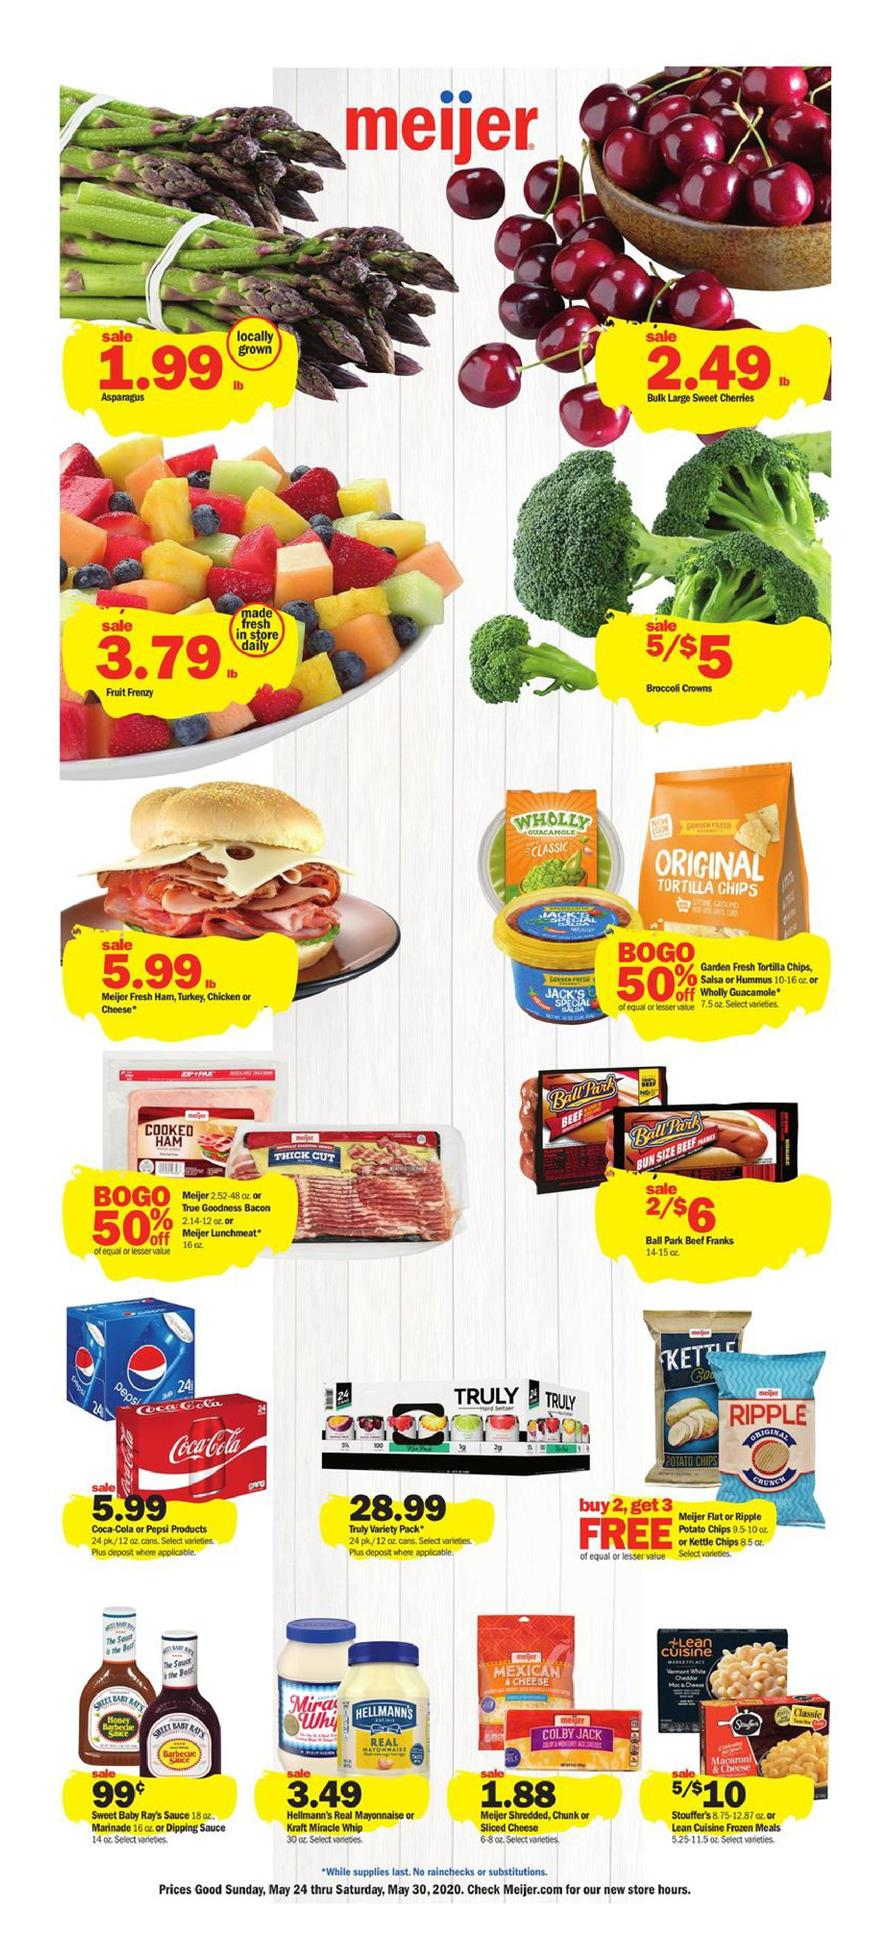 meijer weekly ad may 24 2020